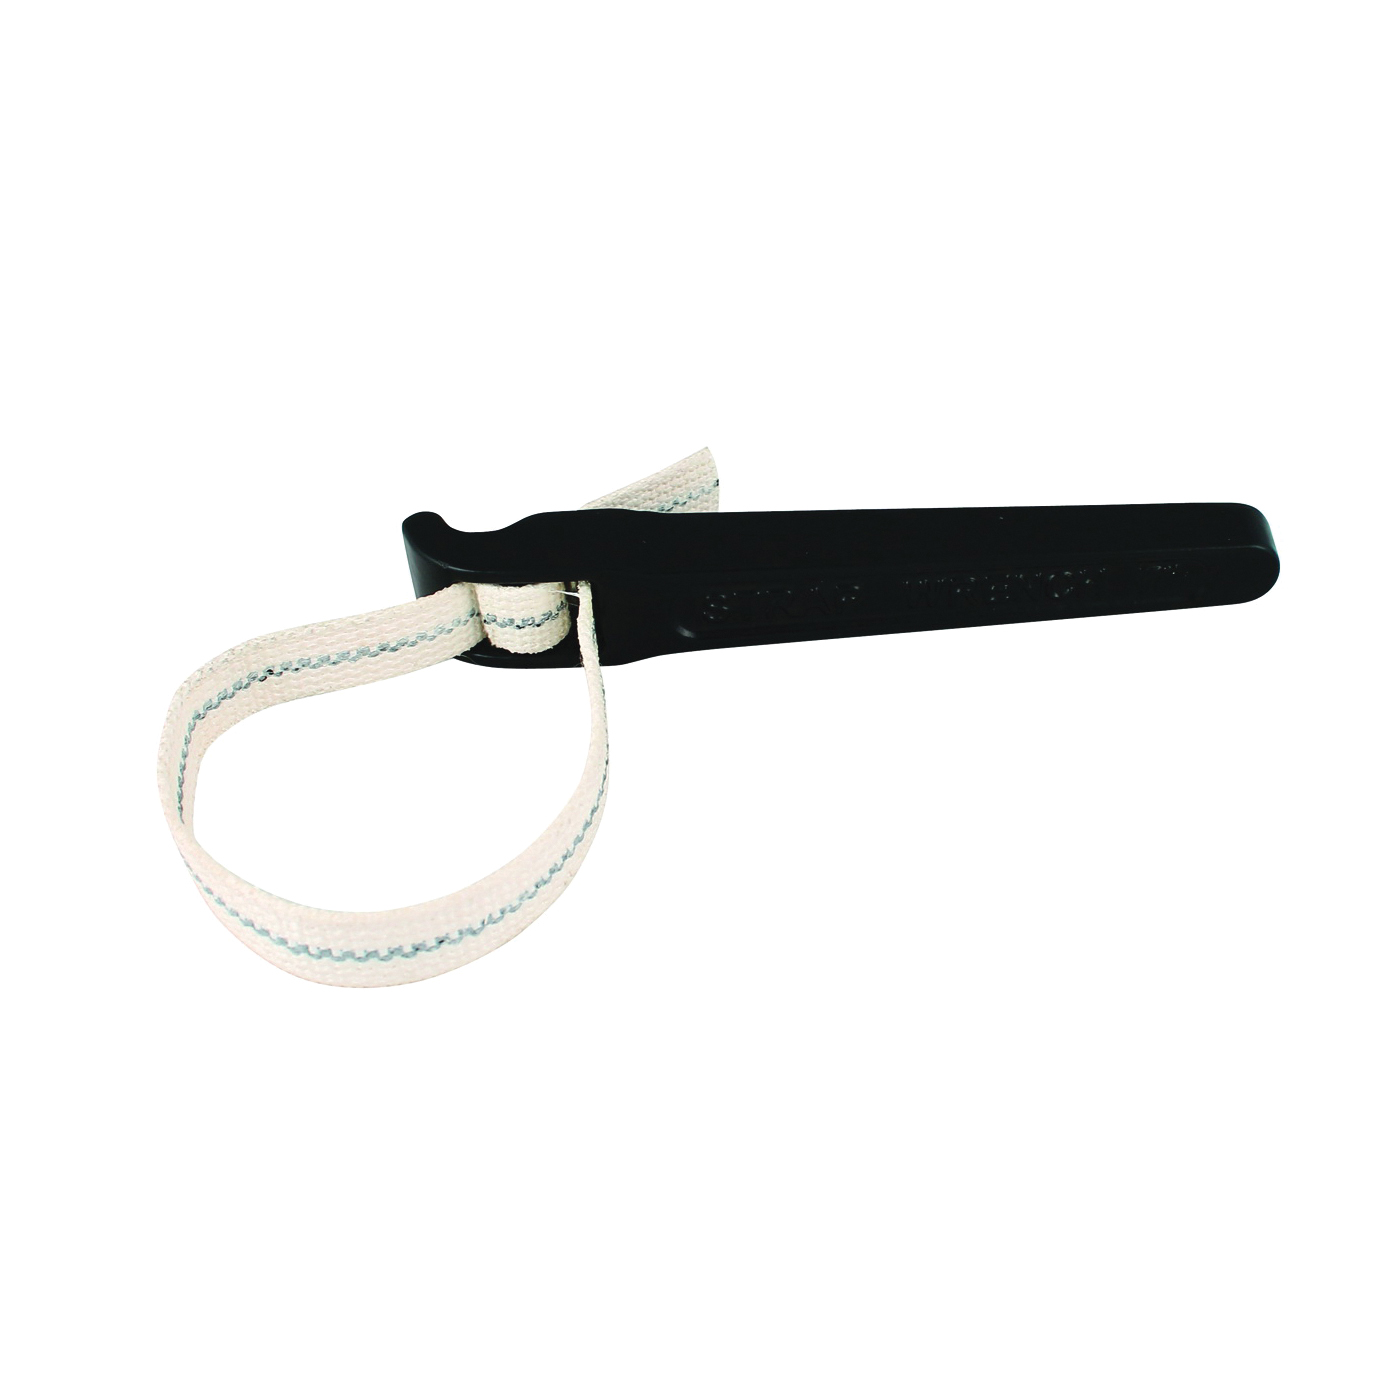 Picture of Plumb Pak PP840-13 Strap Wrench, 2 in Pipe, 7 in L Strap